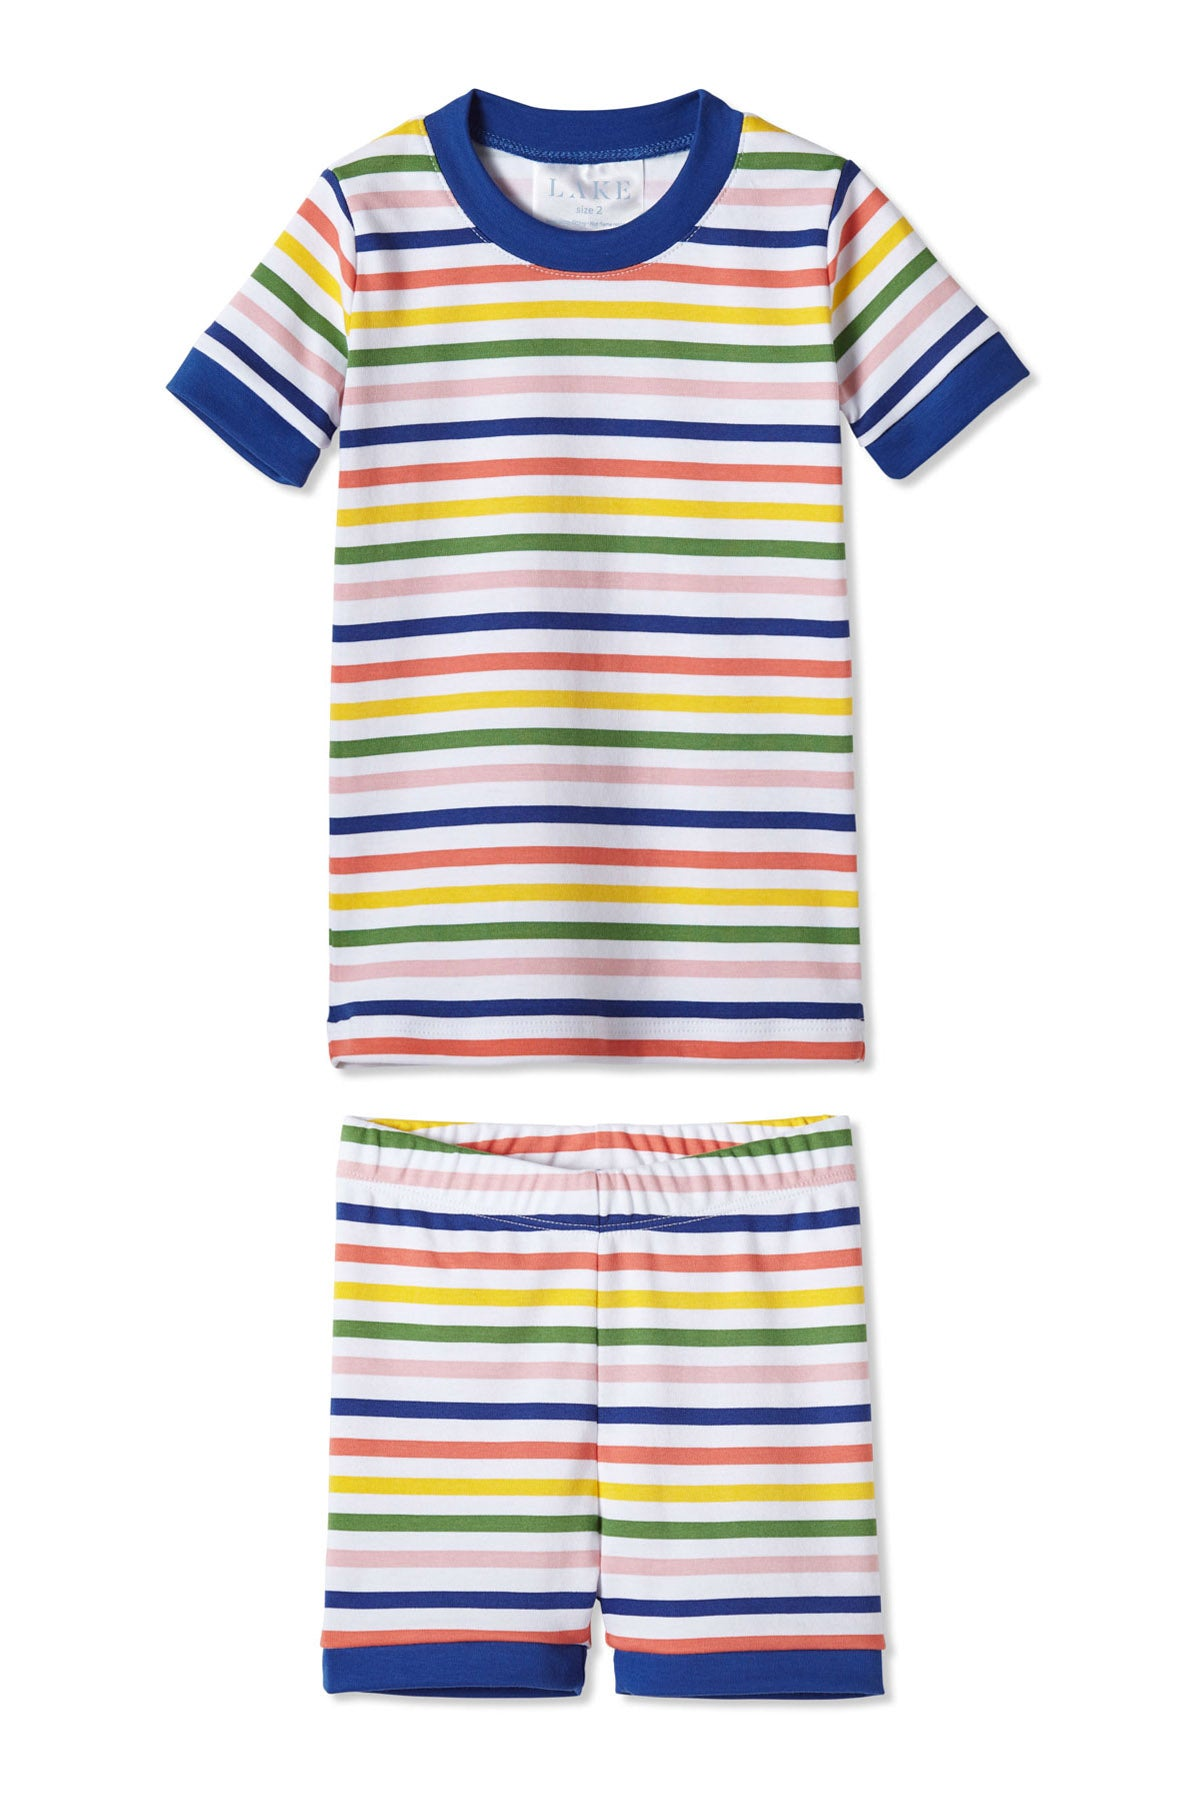 Kids Shorts Set in Maisonette Stripe